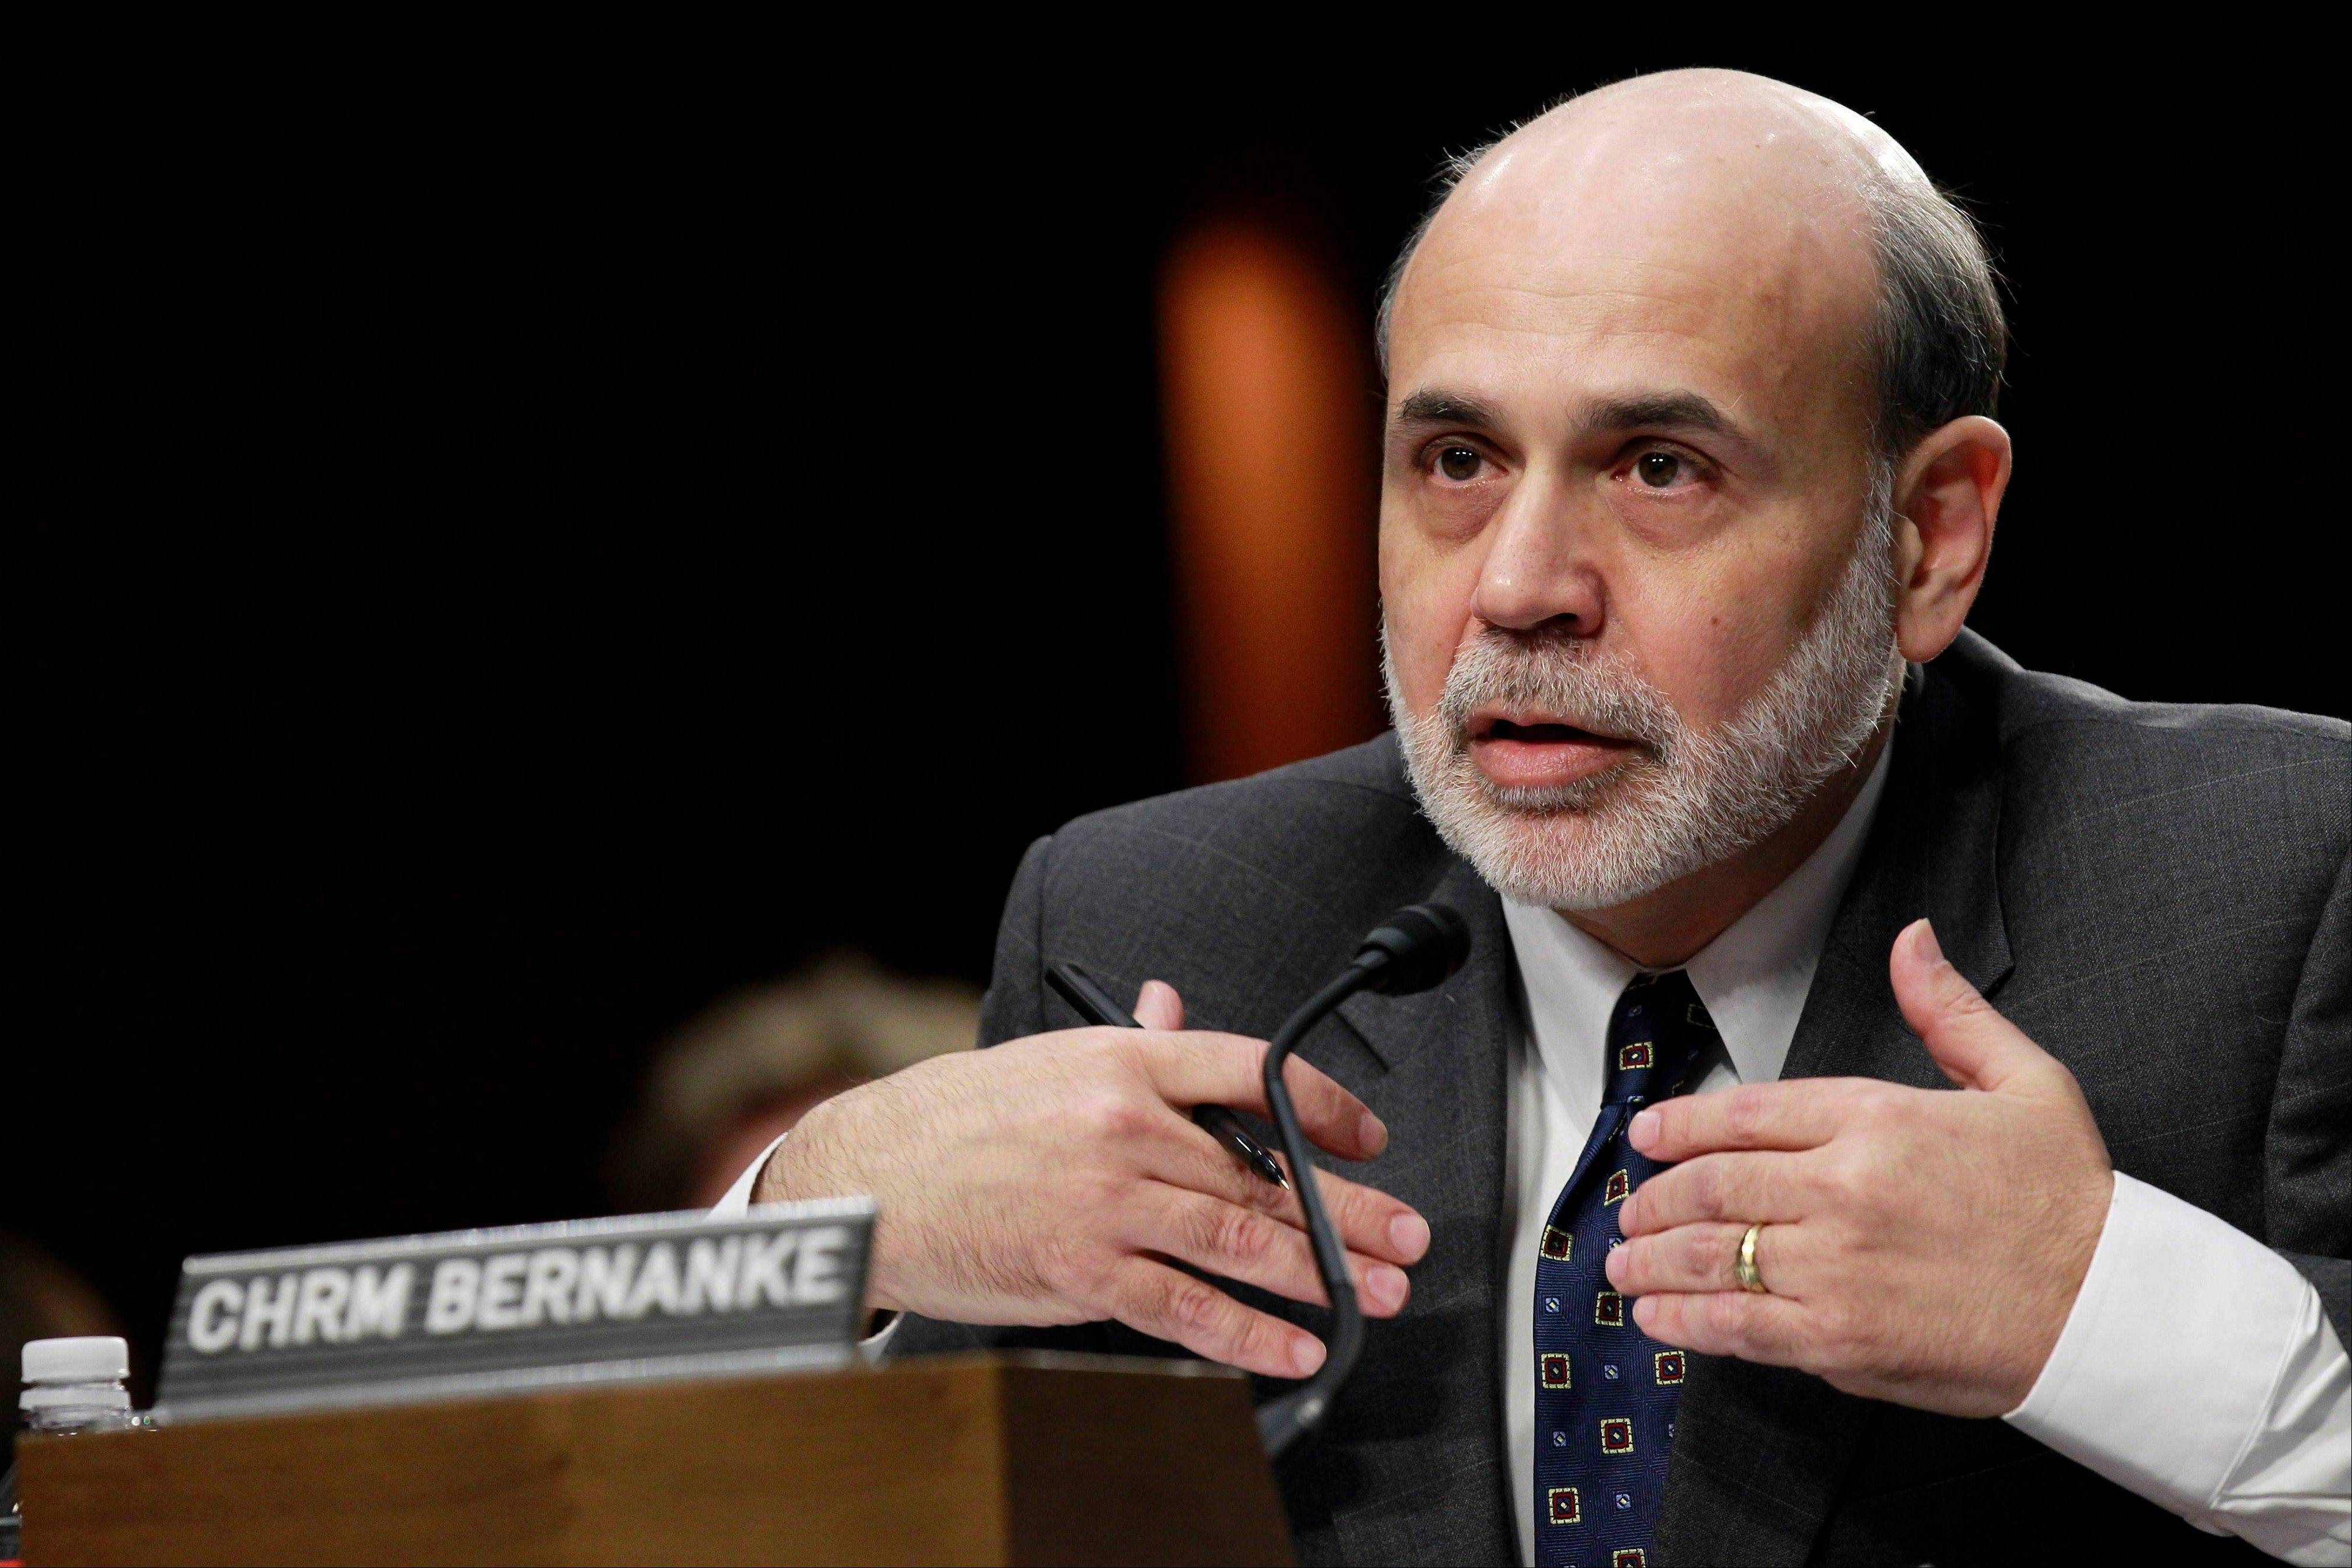 The financial world looks to Federal Reserve Board Chairman Ben Bernanke this week to clarify the Fed�s timetable on economic stimulus.